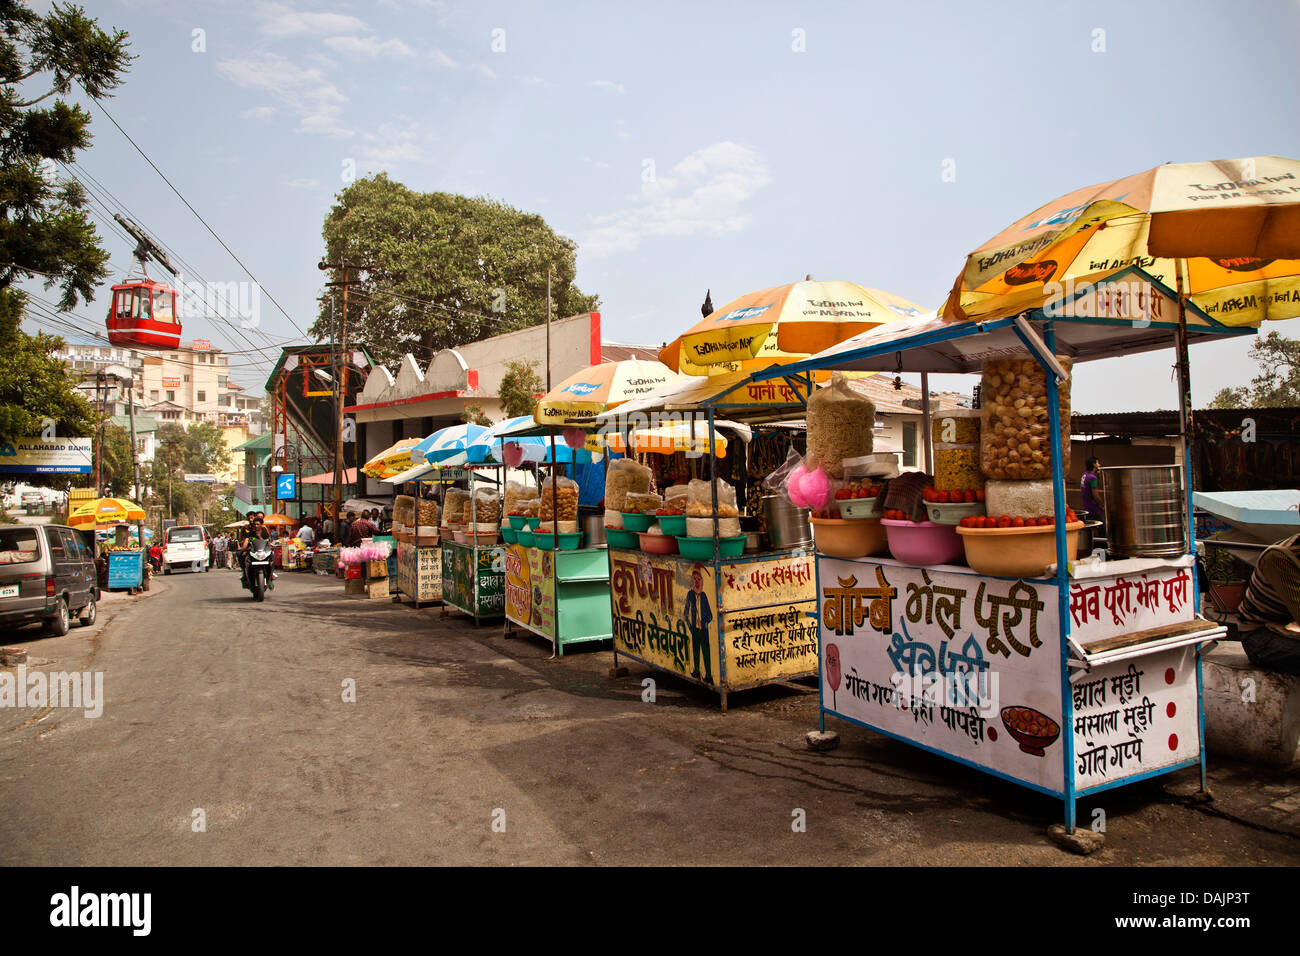 Food stalls along the road, Mall Road, Mussoorie, Uttarakhand, India - Stock Image